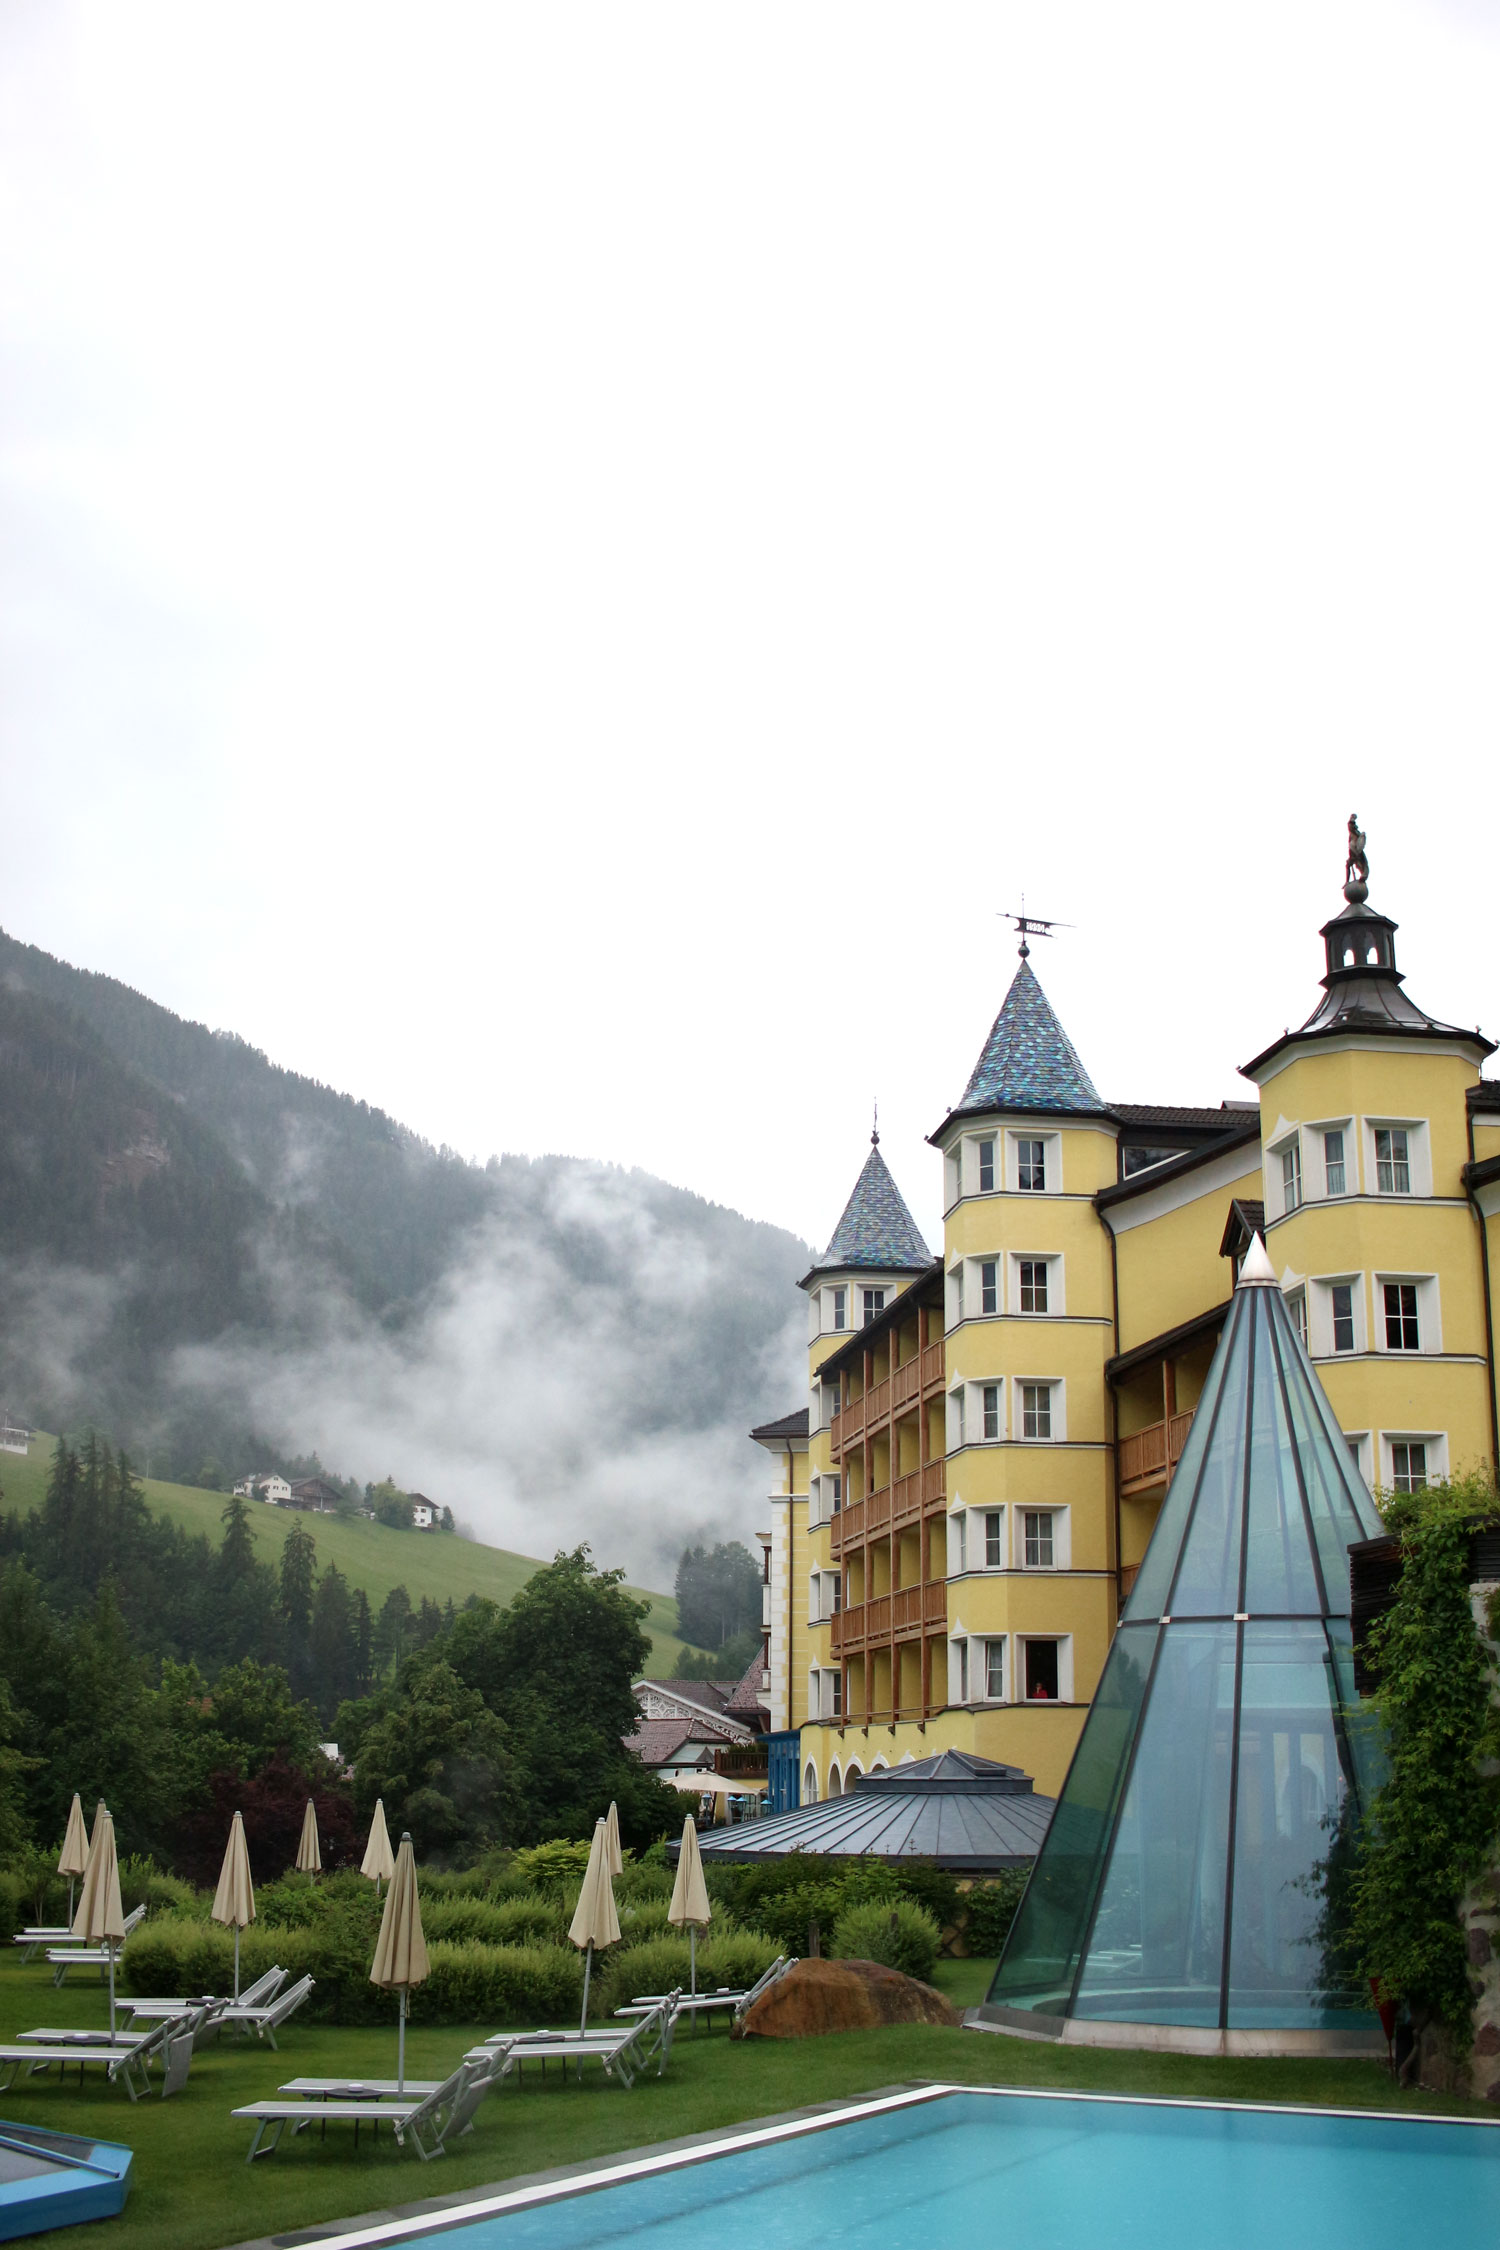 Italy-adler-dolomiti-hotel-spa-resort-review-travel-blogger-60